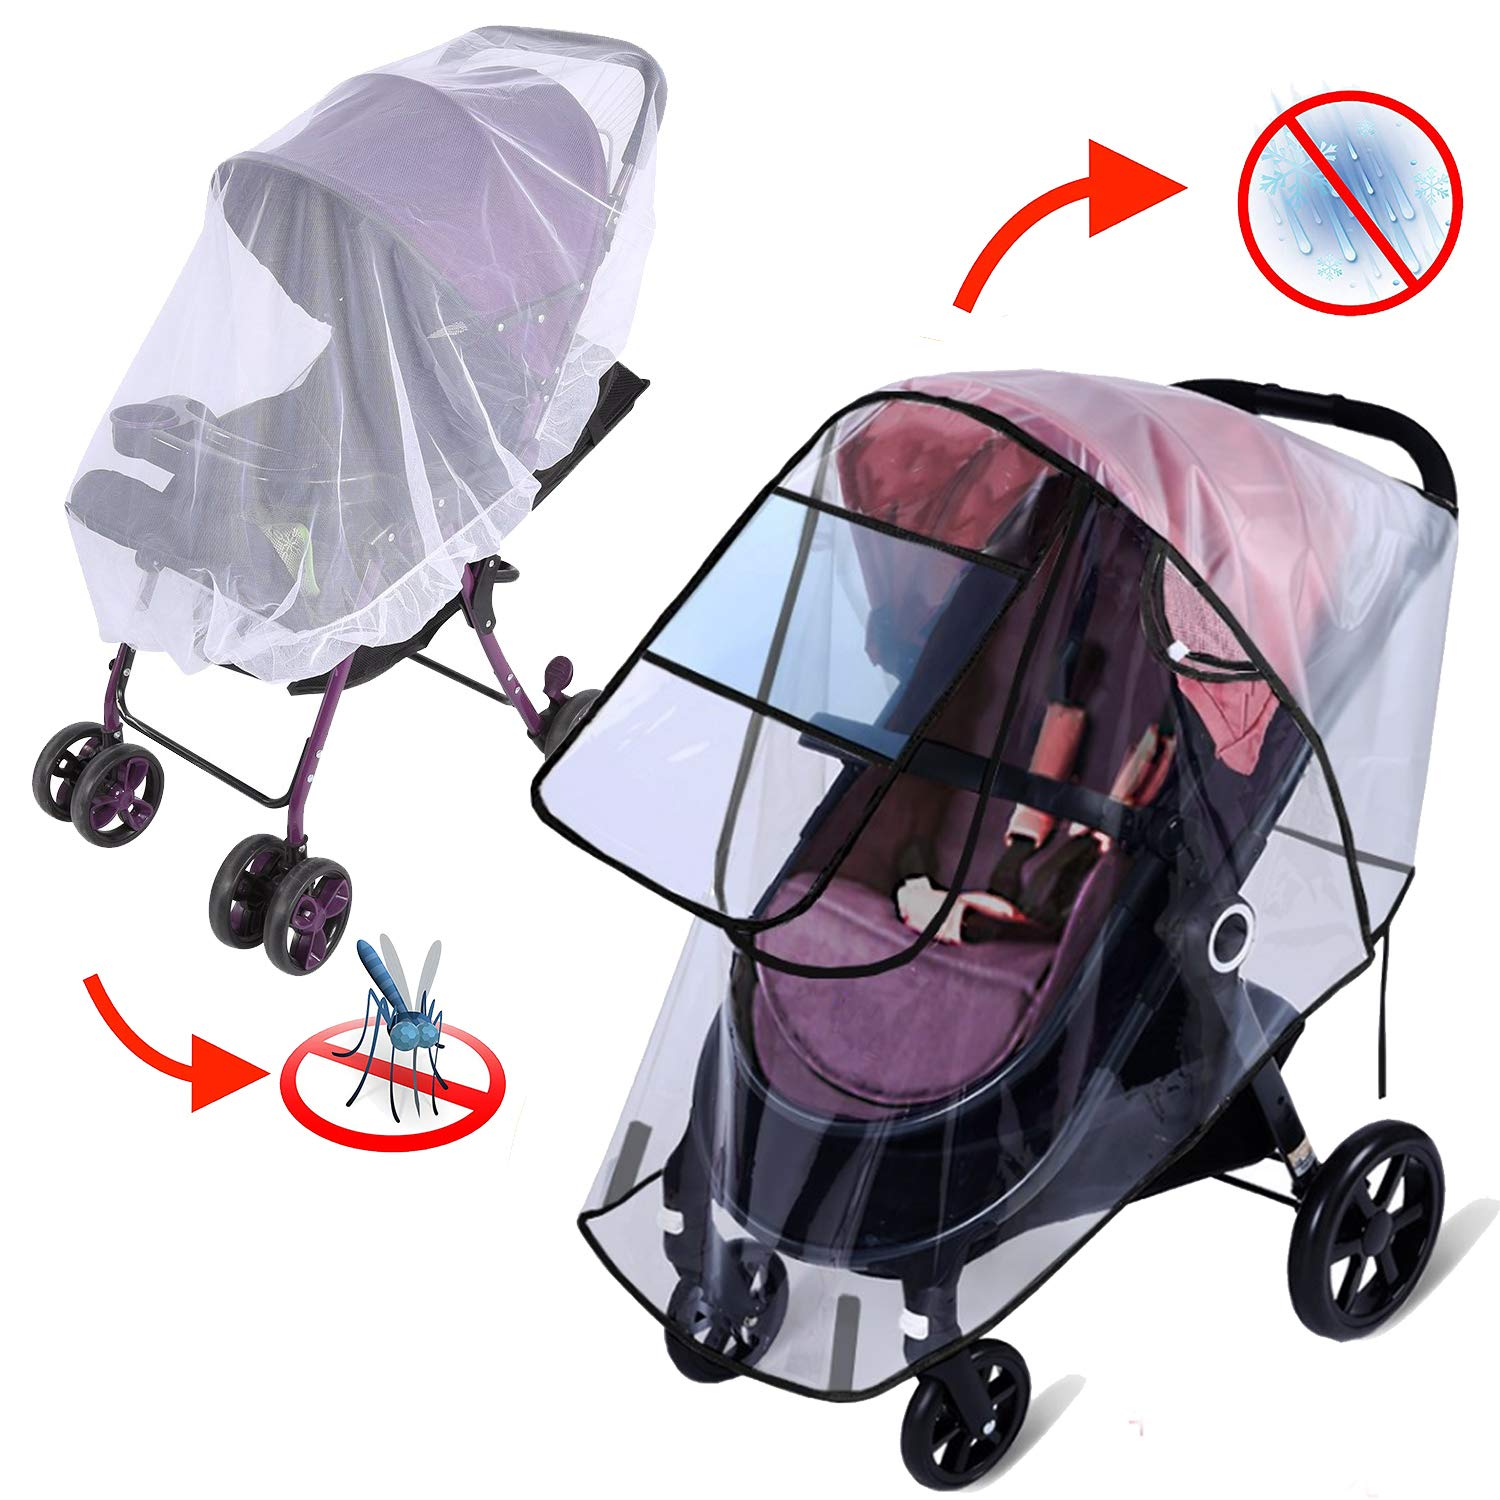 Rain Cover for Stroller - Mosquito Net(2-Piece Set), Apsung Universal Baby Travel Stroller Rain Cover Waterproof, Windproof